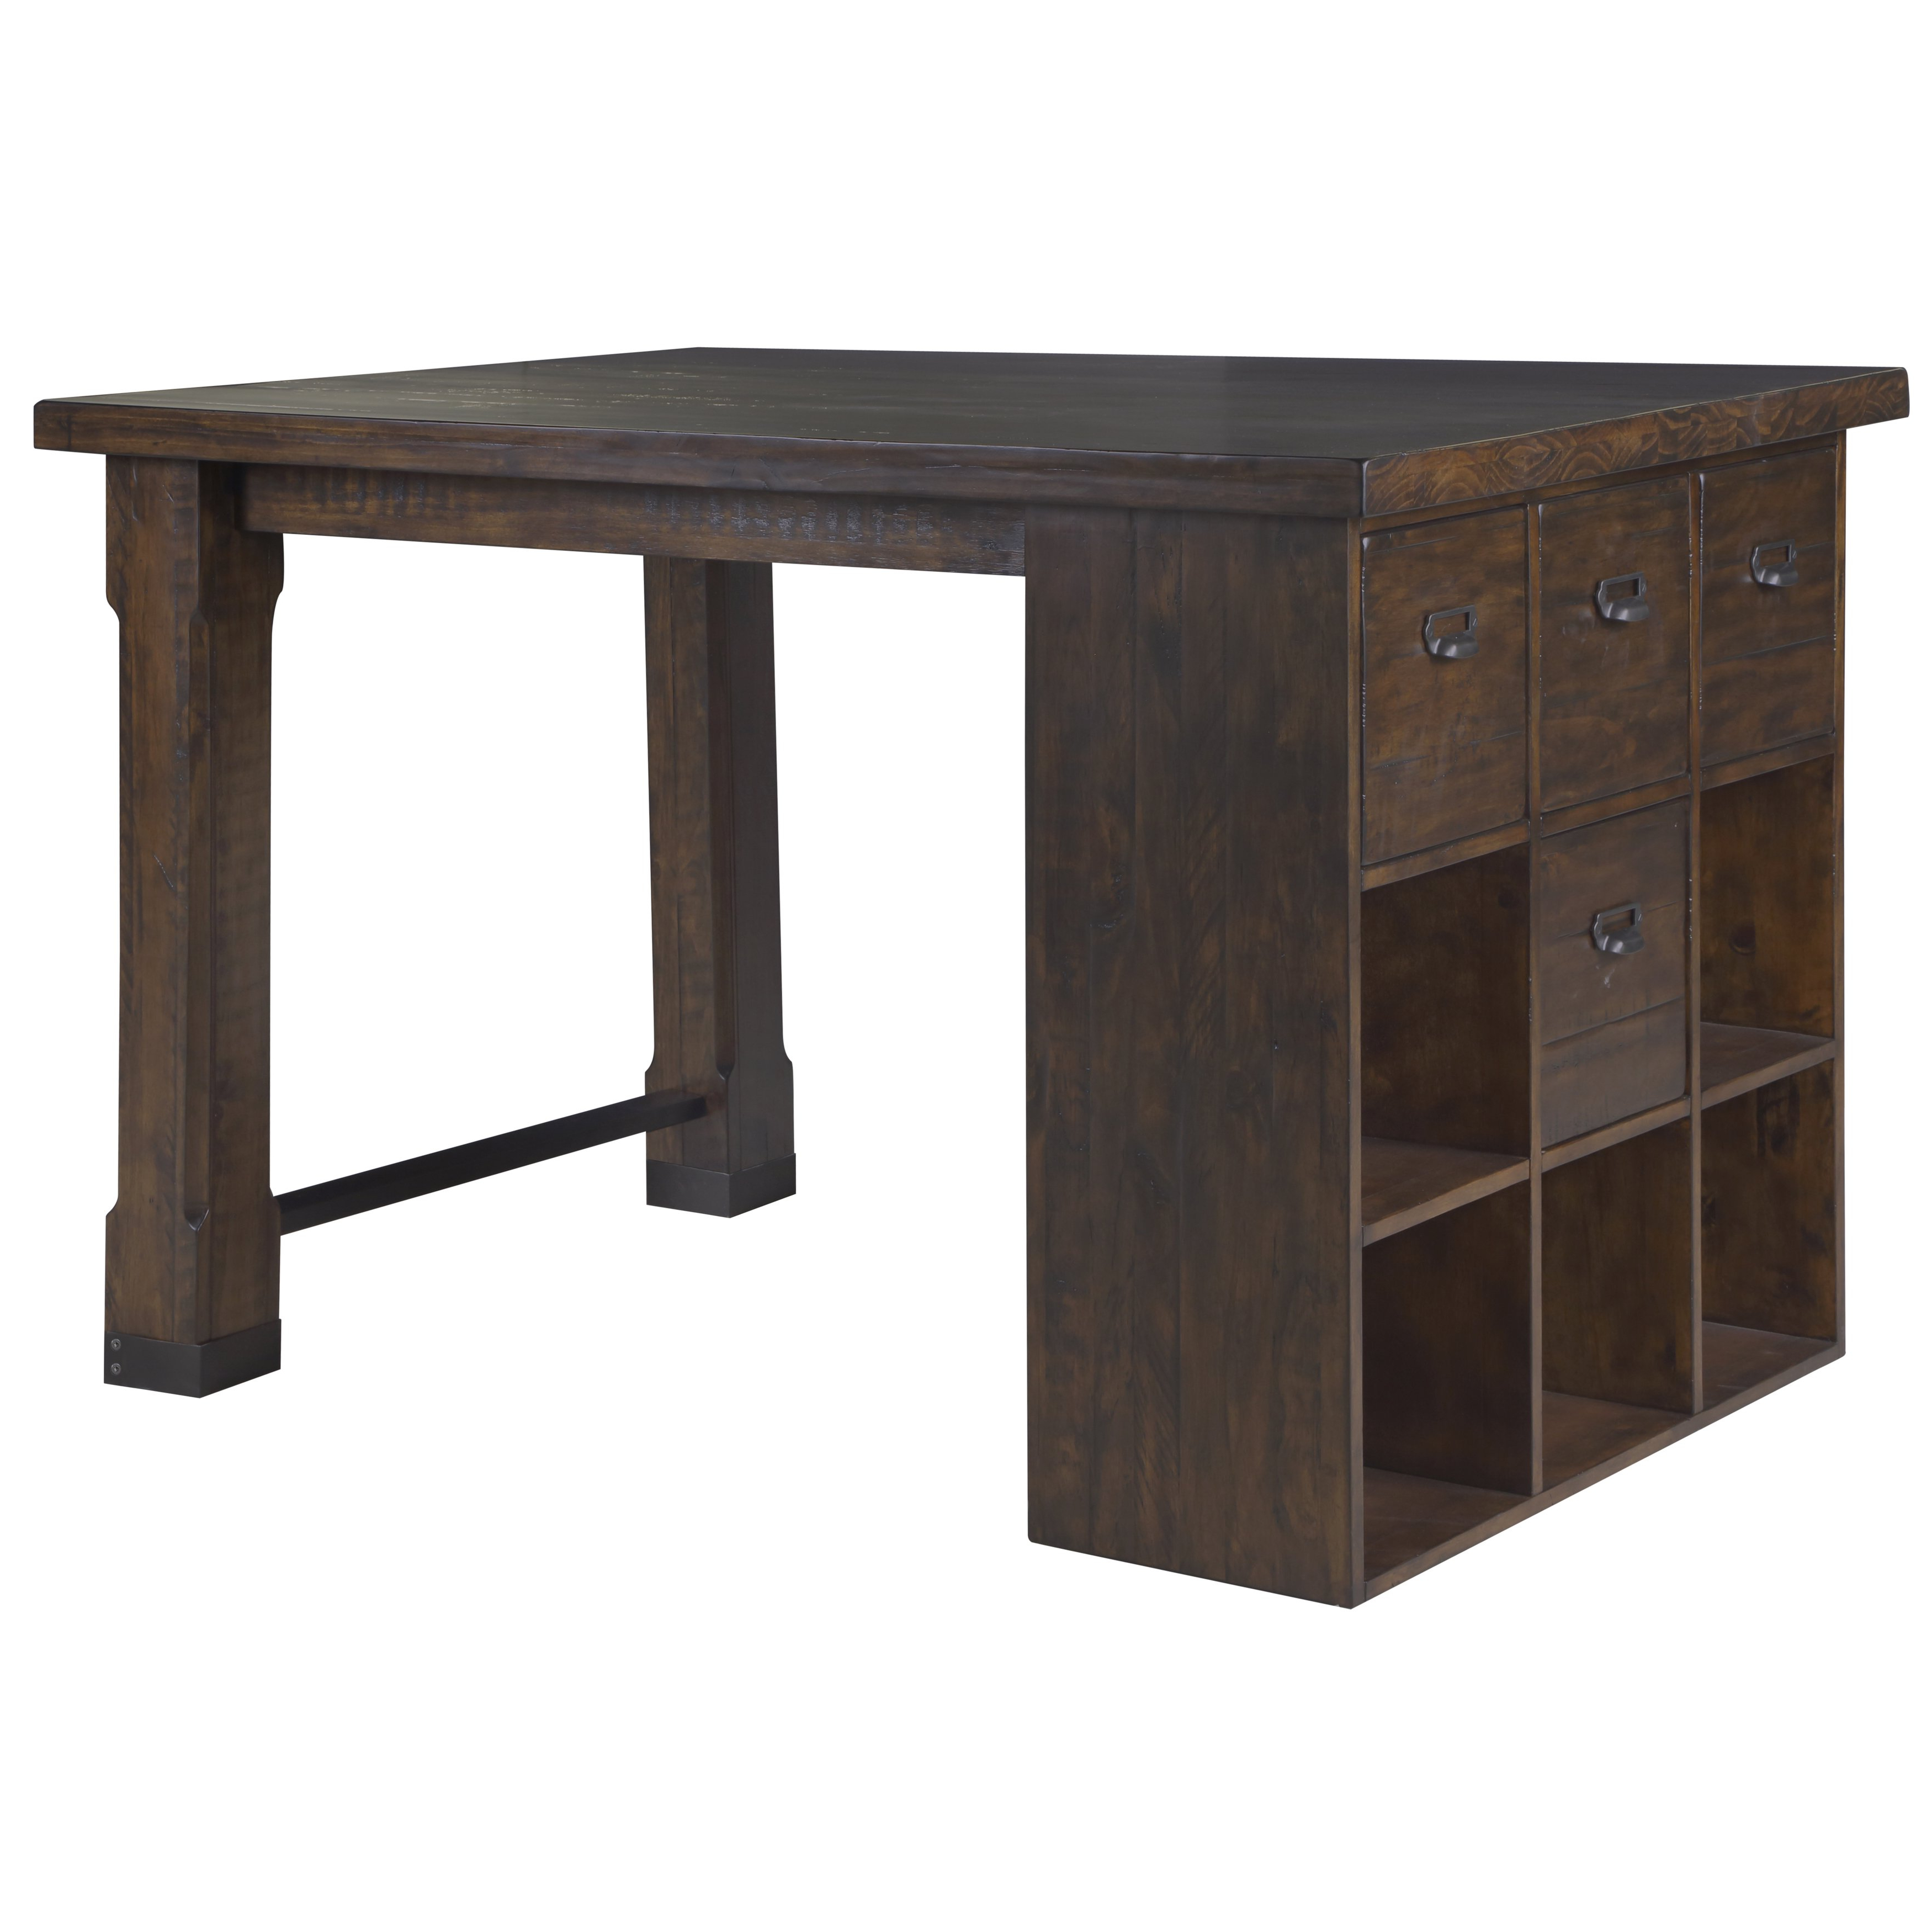 Aged Iron Cube Tables With Latest Shop Silver Orchid Bowers Asymmetrical Counter Height Desk With Cube (View 4 of 20)